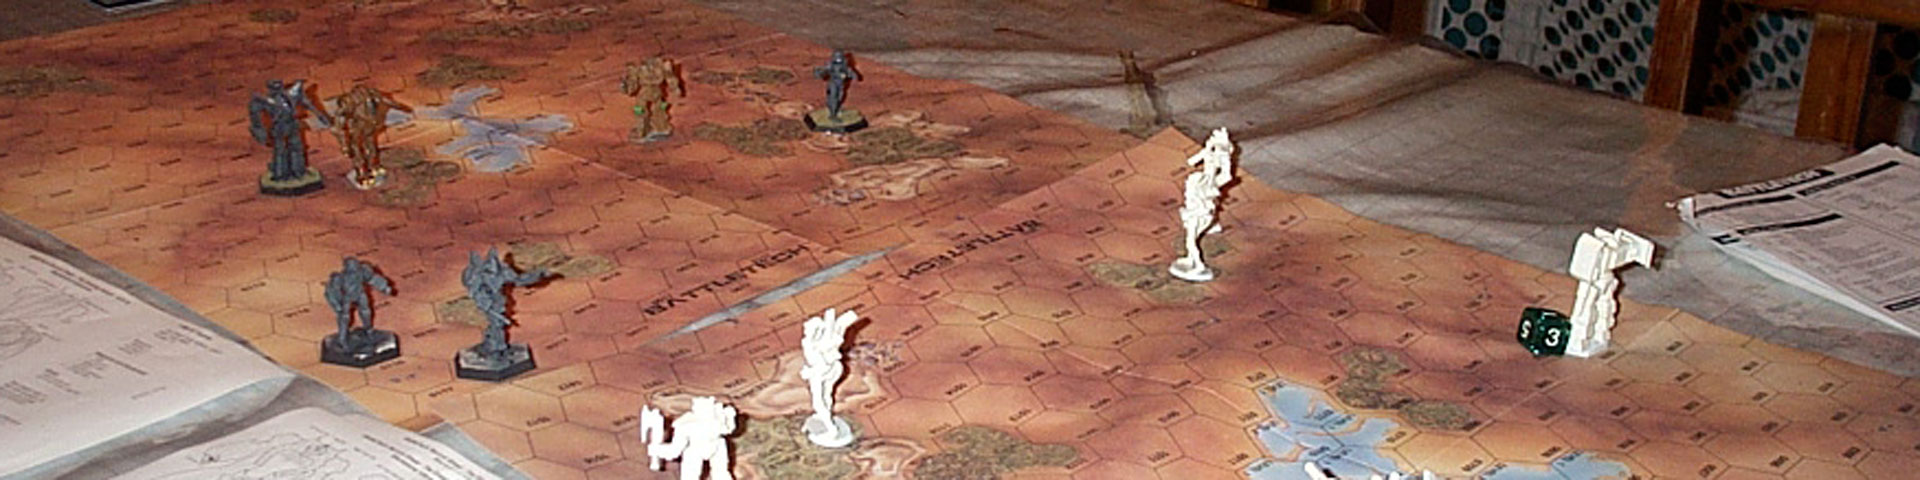 Grey and white robot-like figurines battle on a hexagonal map.